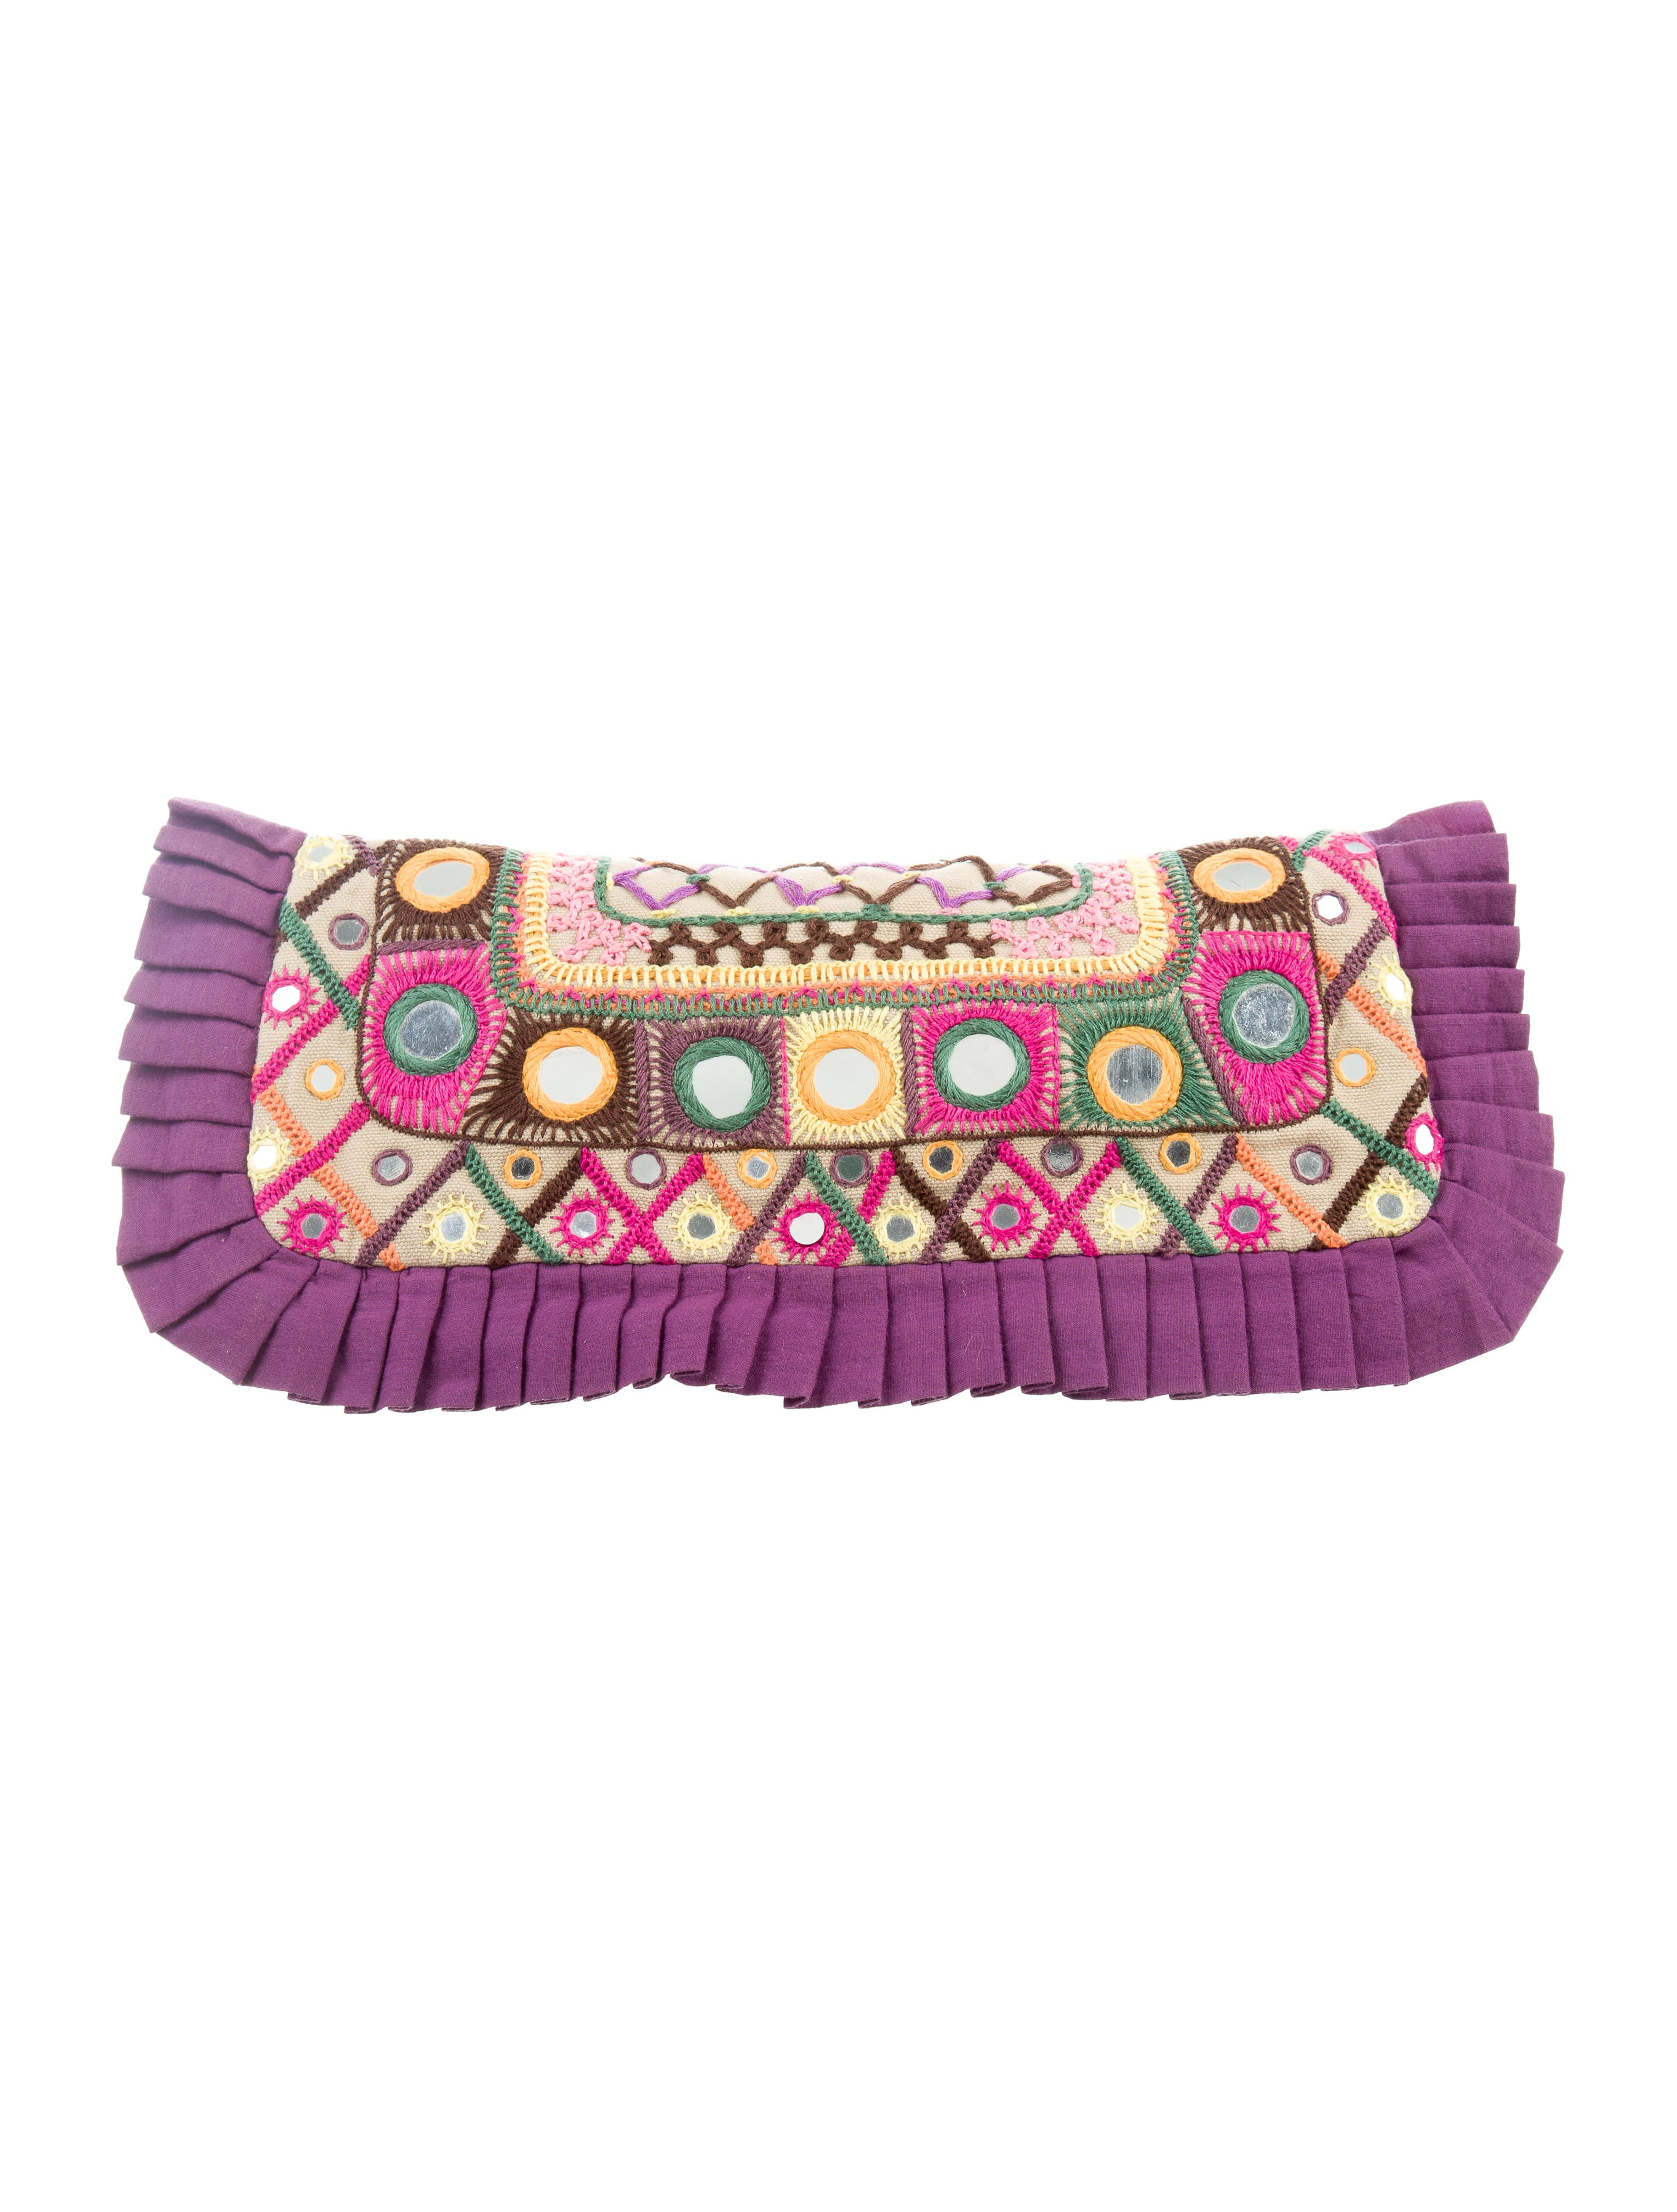 Tory Burch Canvas Embellished Clutch - Handbags - WTO118911 | The RealReal